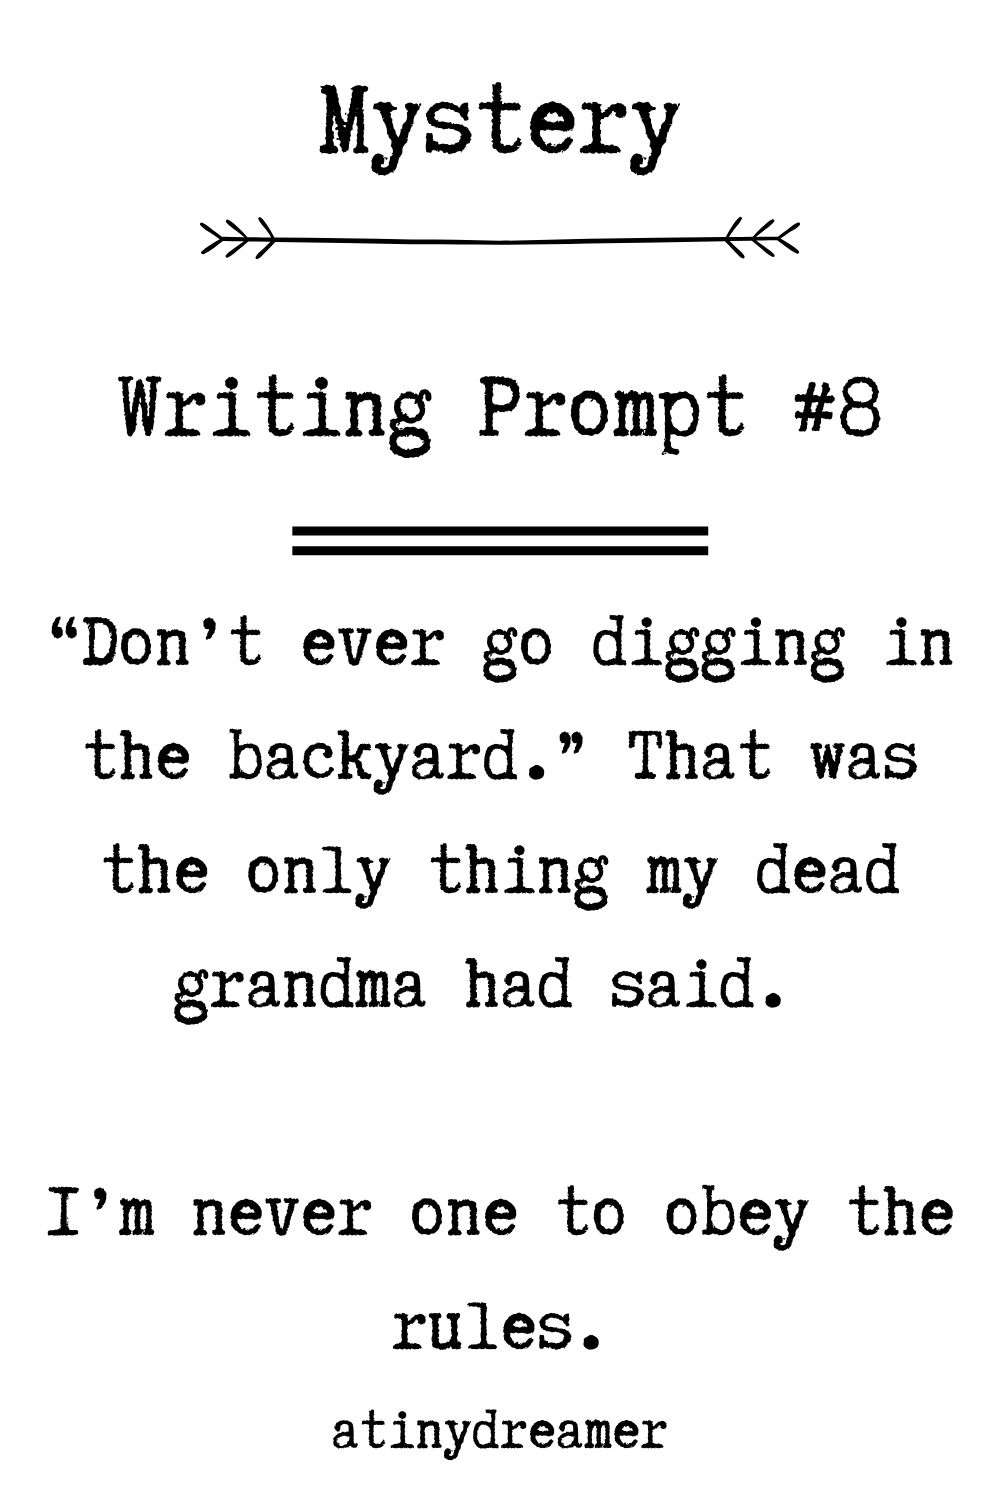 32 Intriguing Mystery Story Prompts